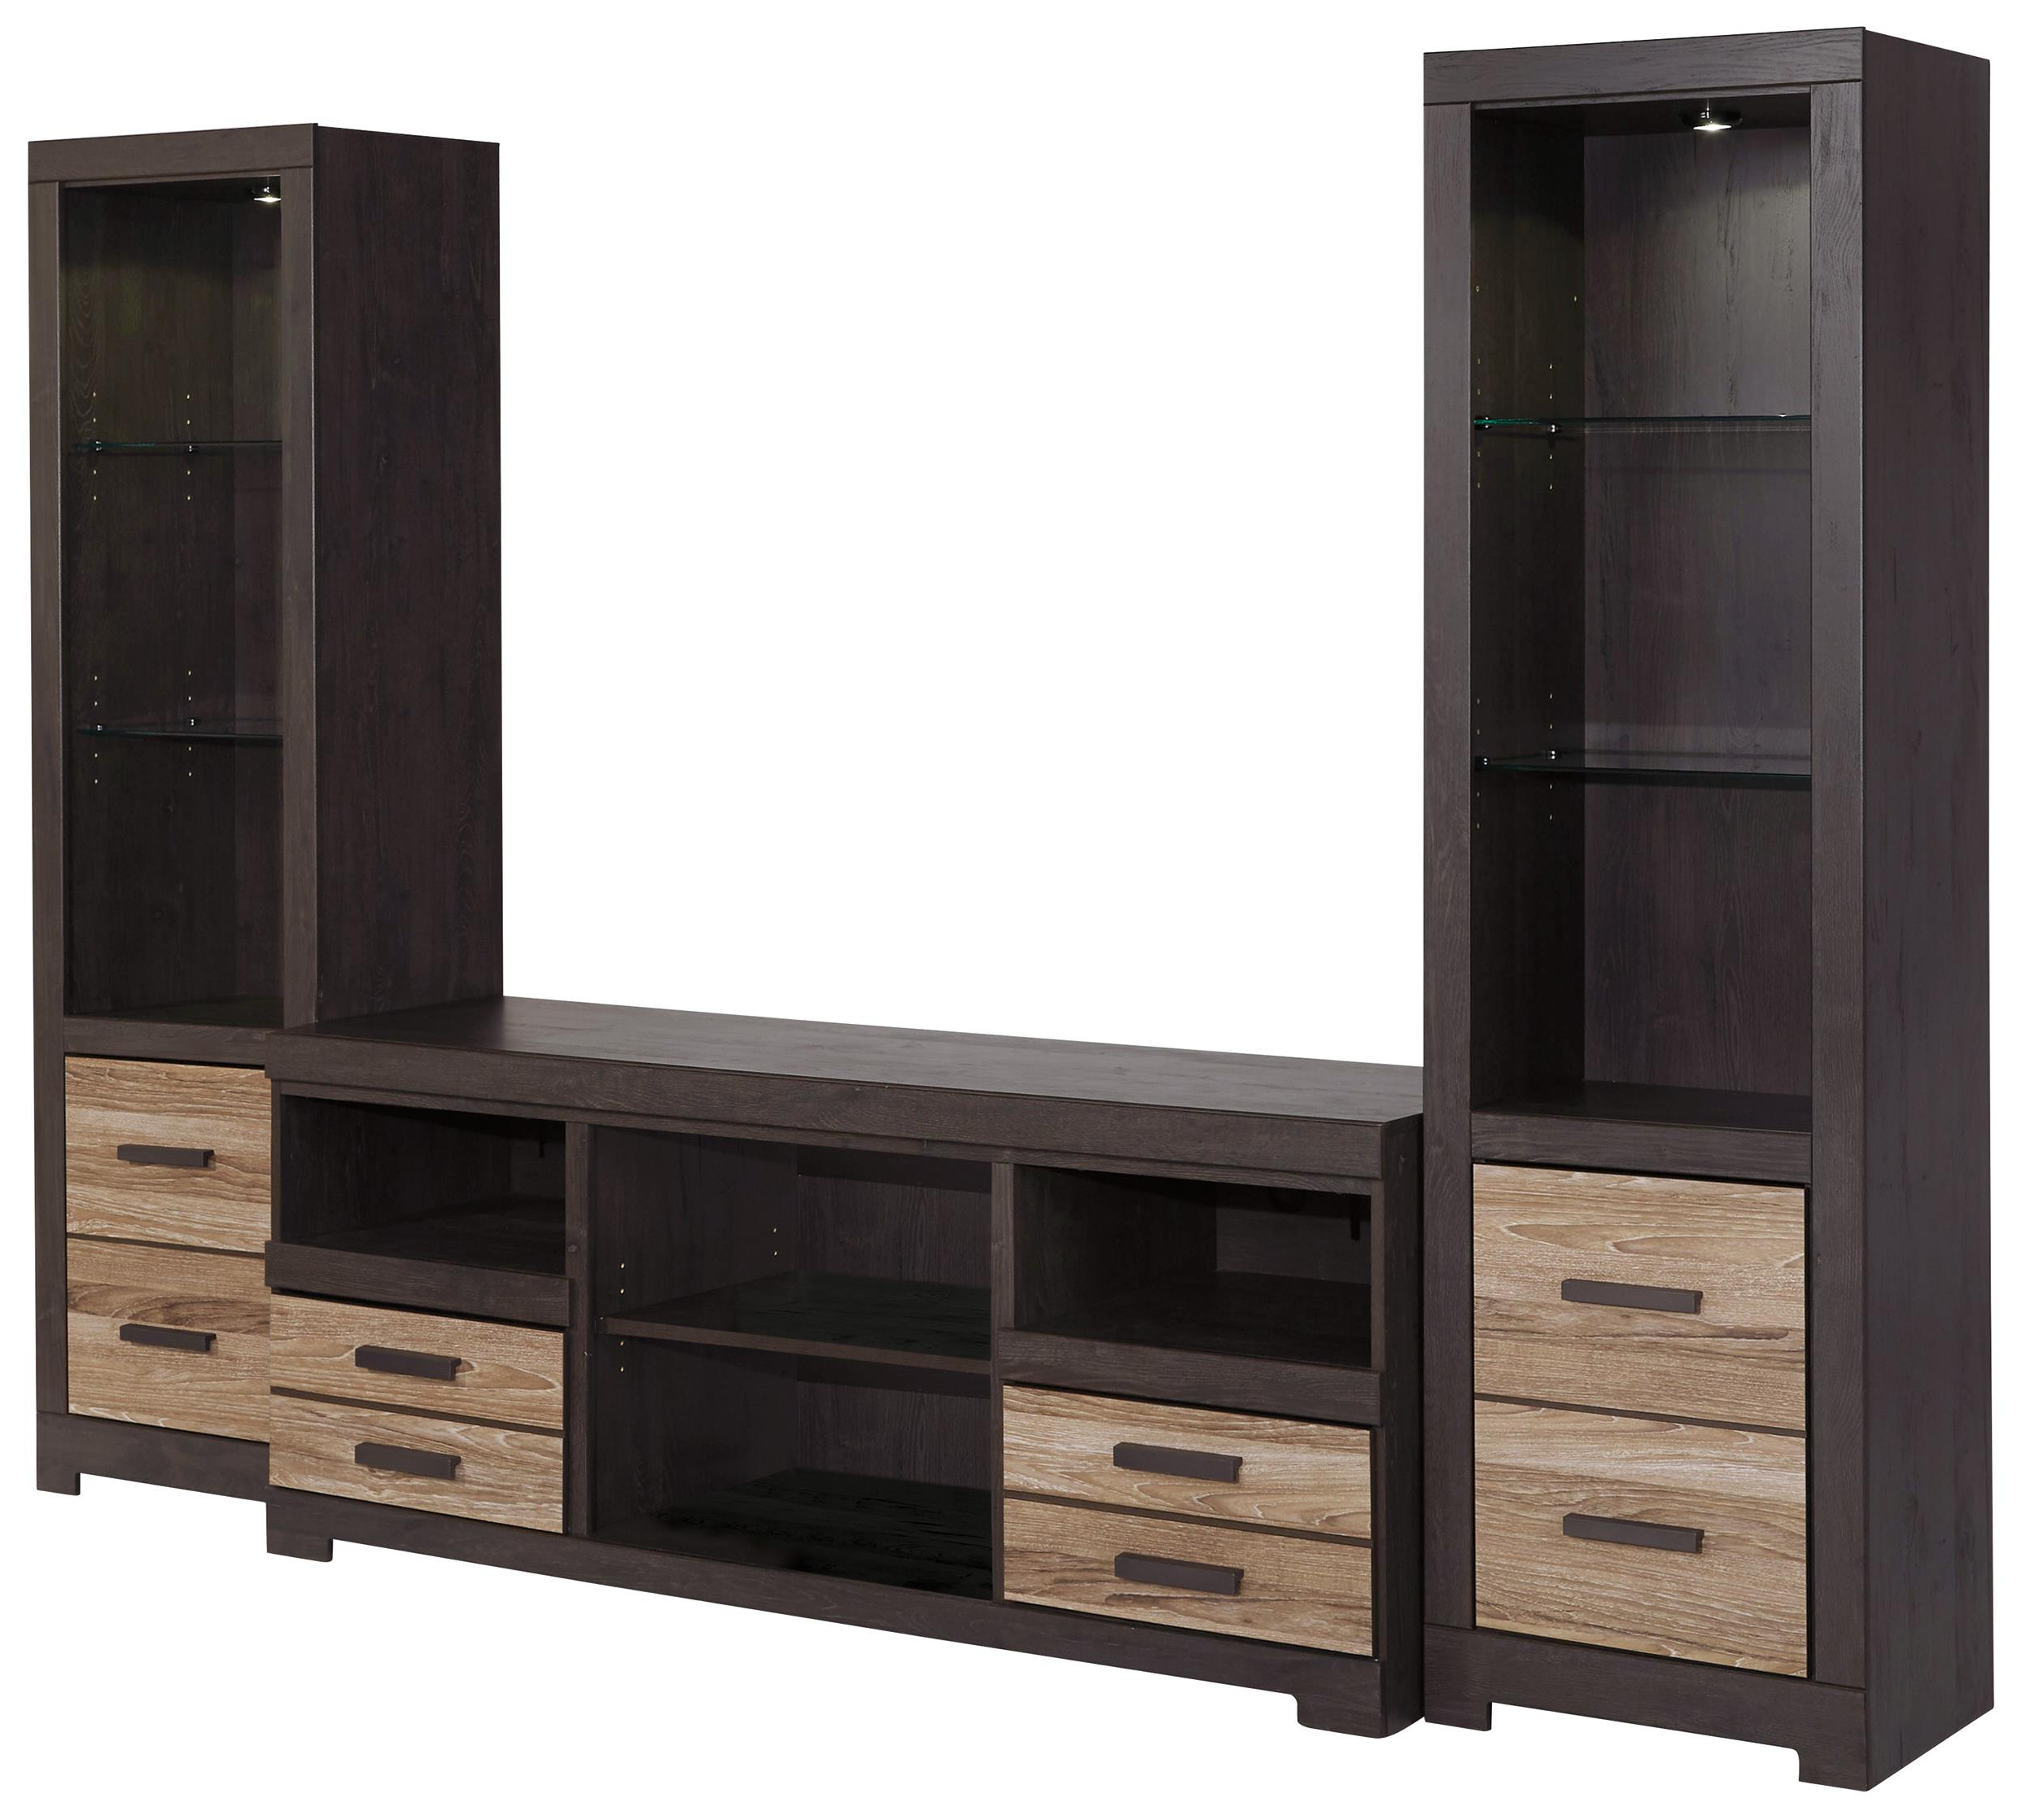 Widely Used Signature Designashley Harlinton Large Tv Stand & 2 Tall Piers Regarding Large Tv Cabinets (View 20 of 20)